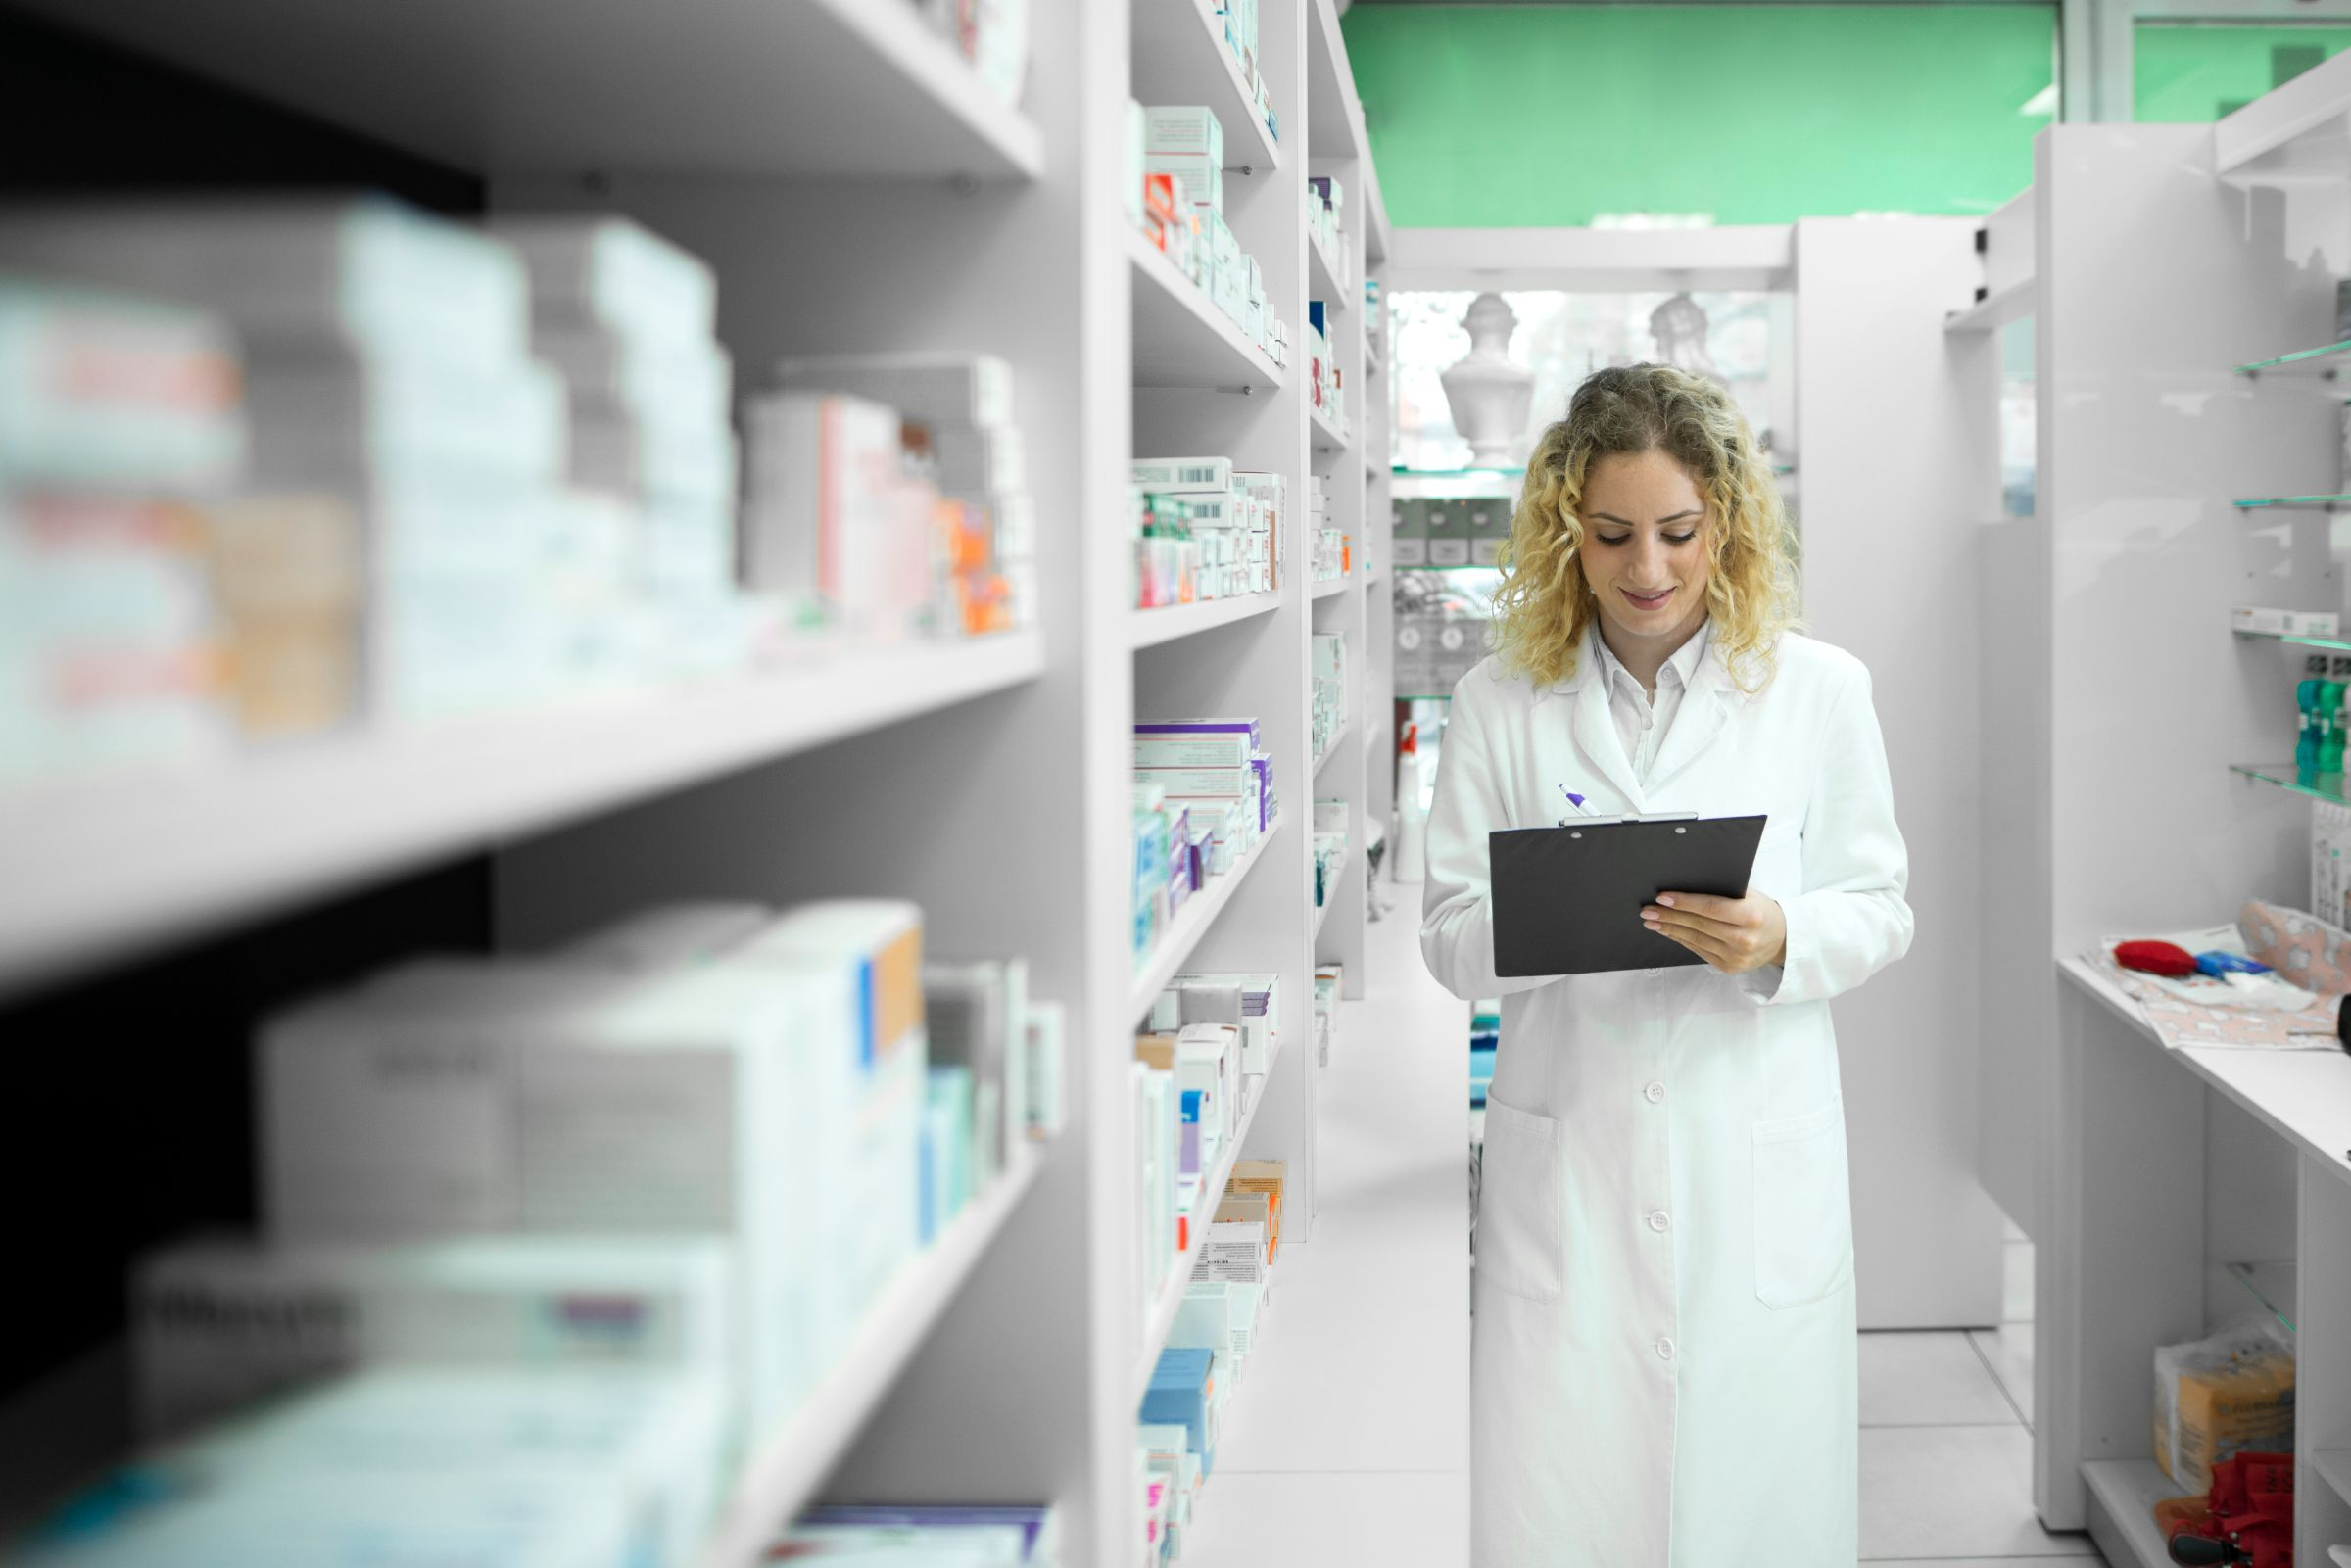 Pharmacist White Uniform Walking By Shelf With Medicines Checking Inventory